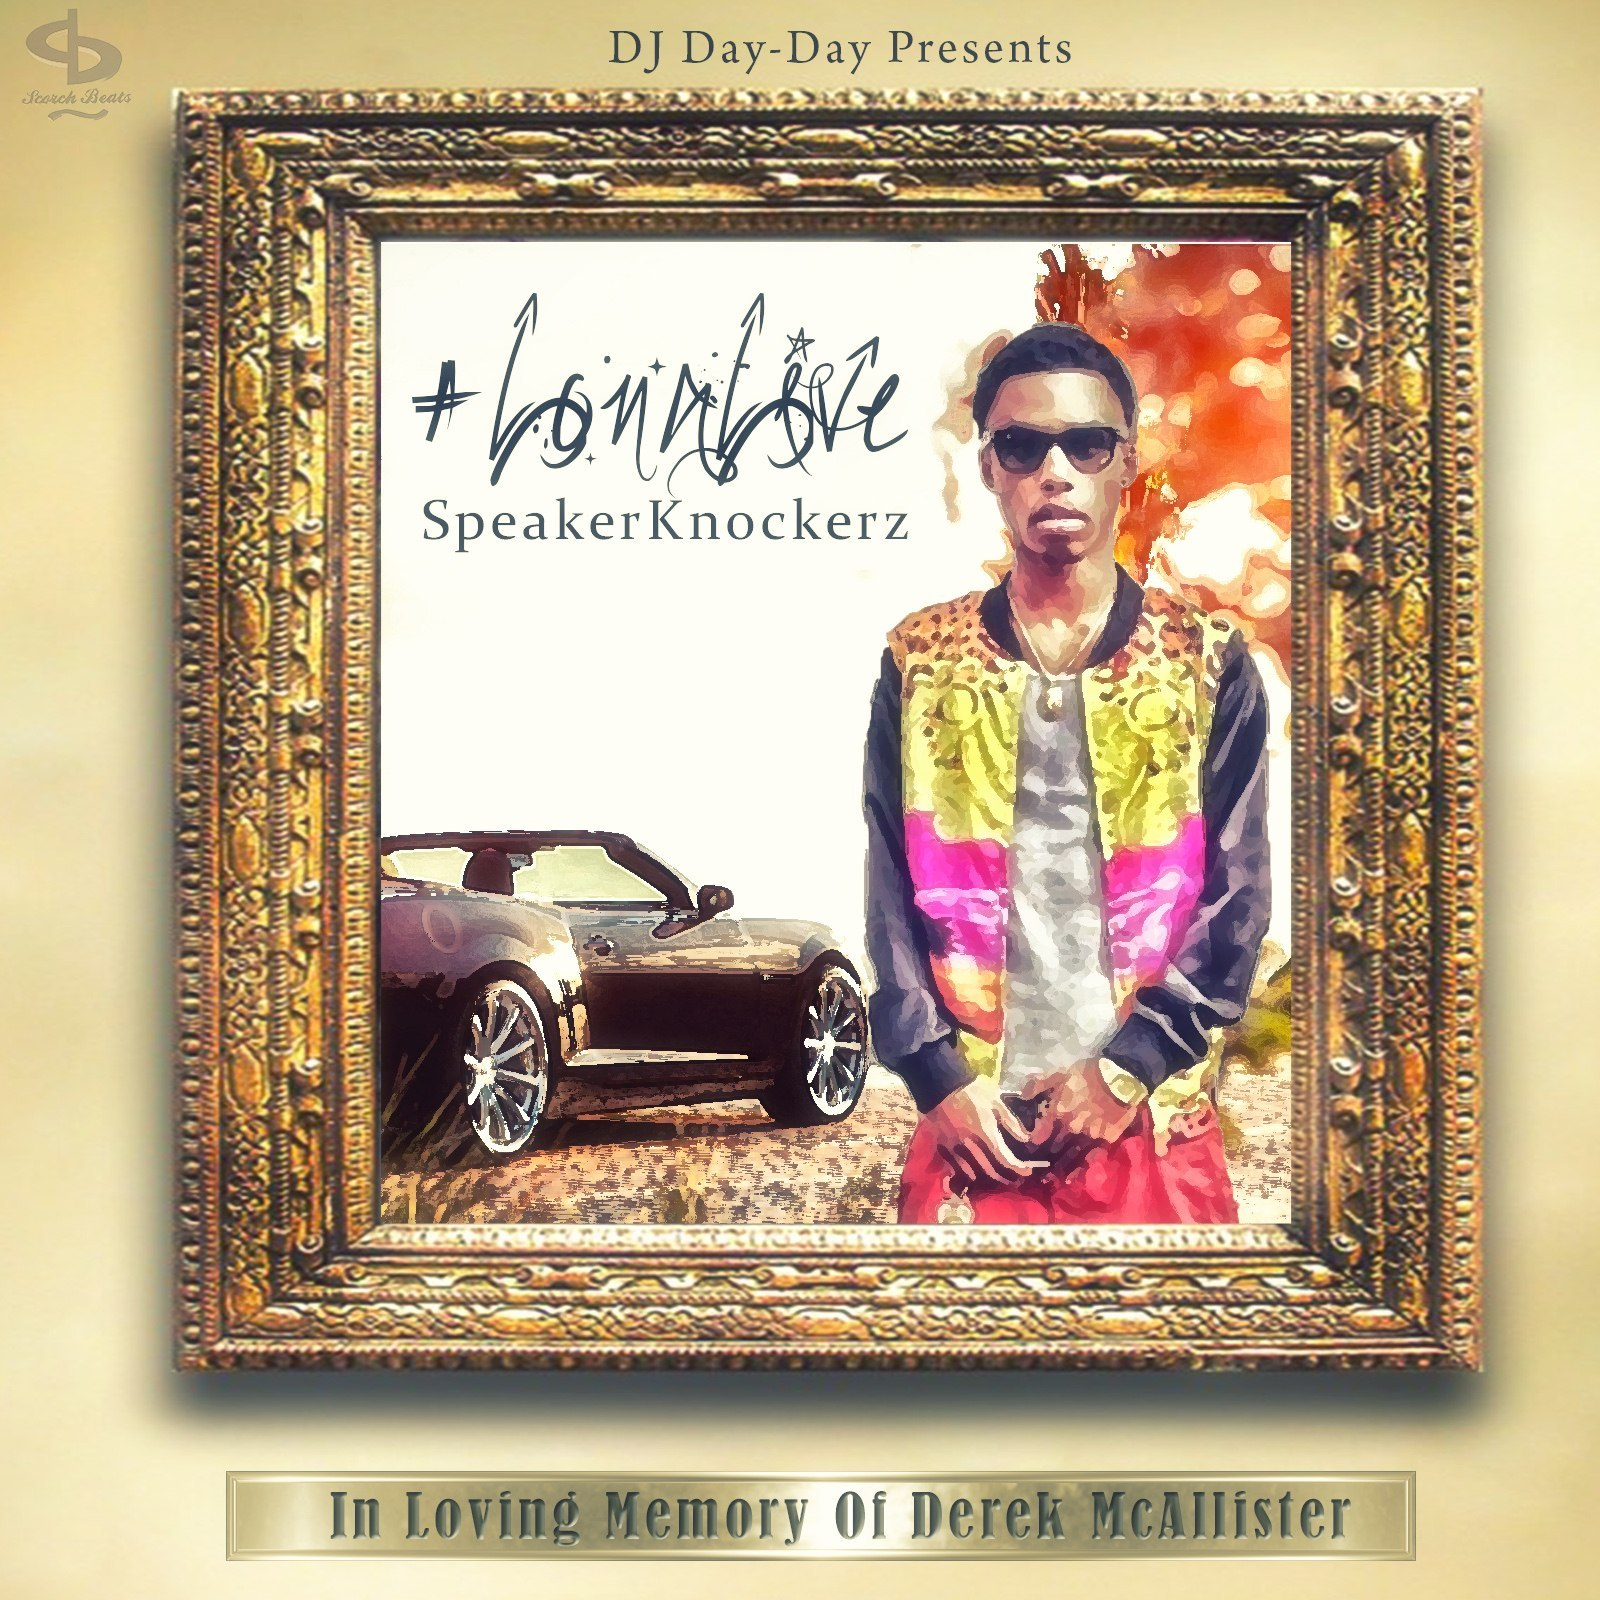 DJ Day-Day Presents: Speaker Knockerz - #LongLiveSpeakerKnockerz